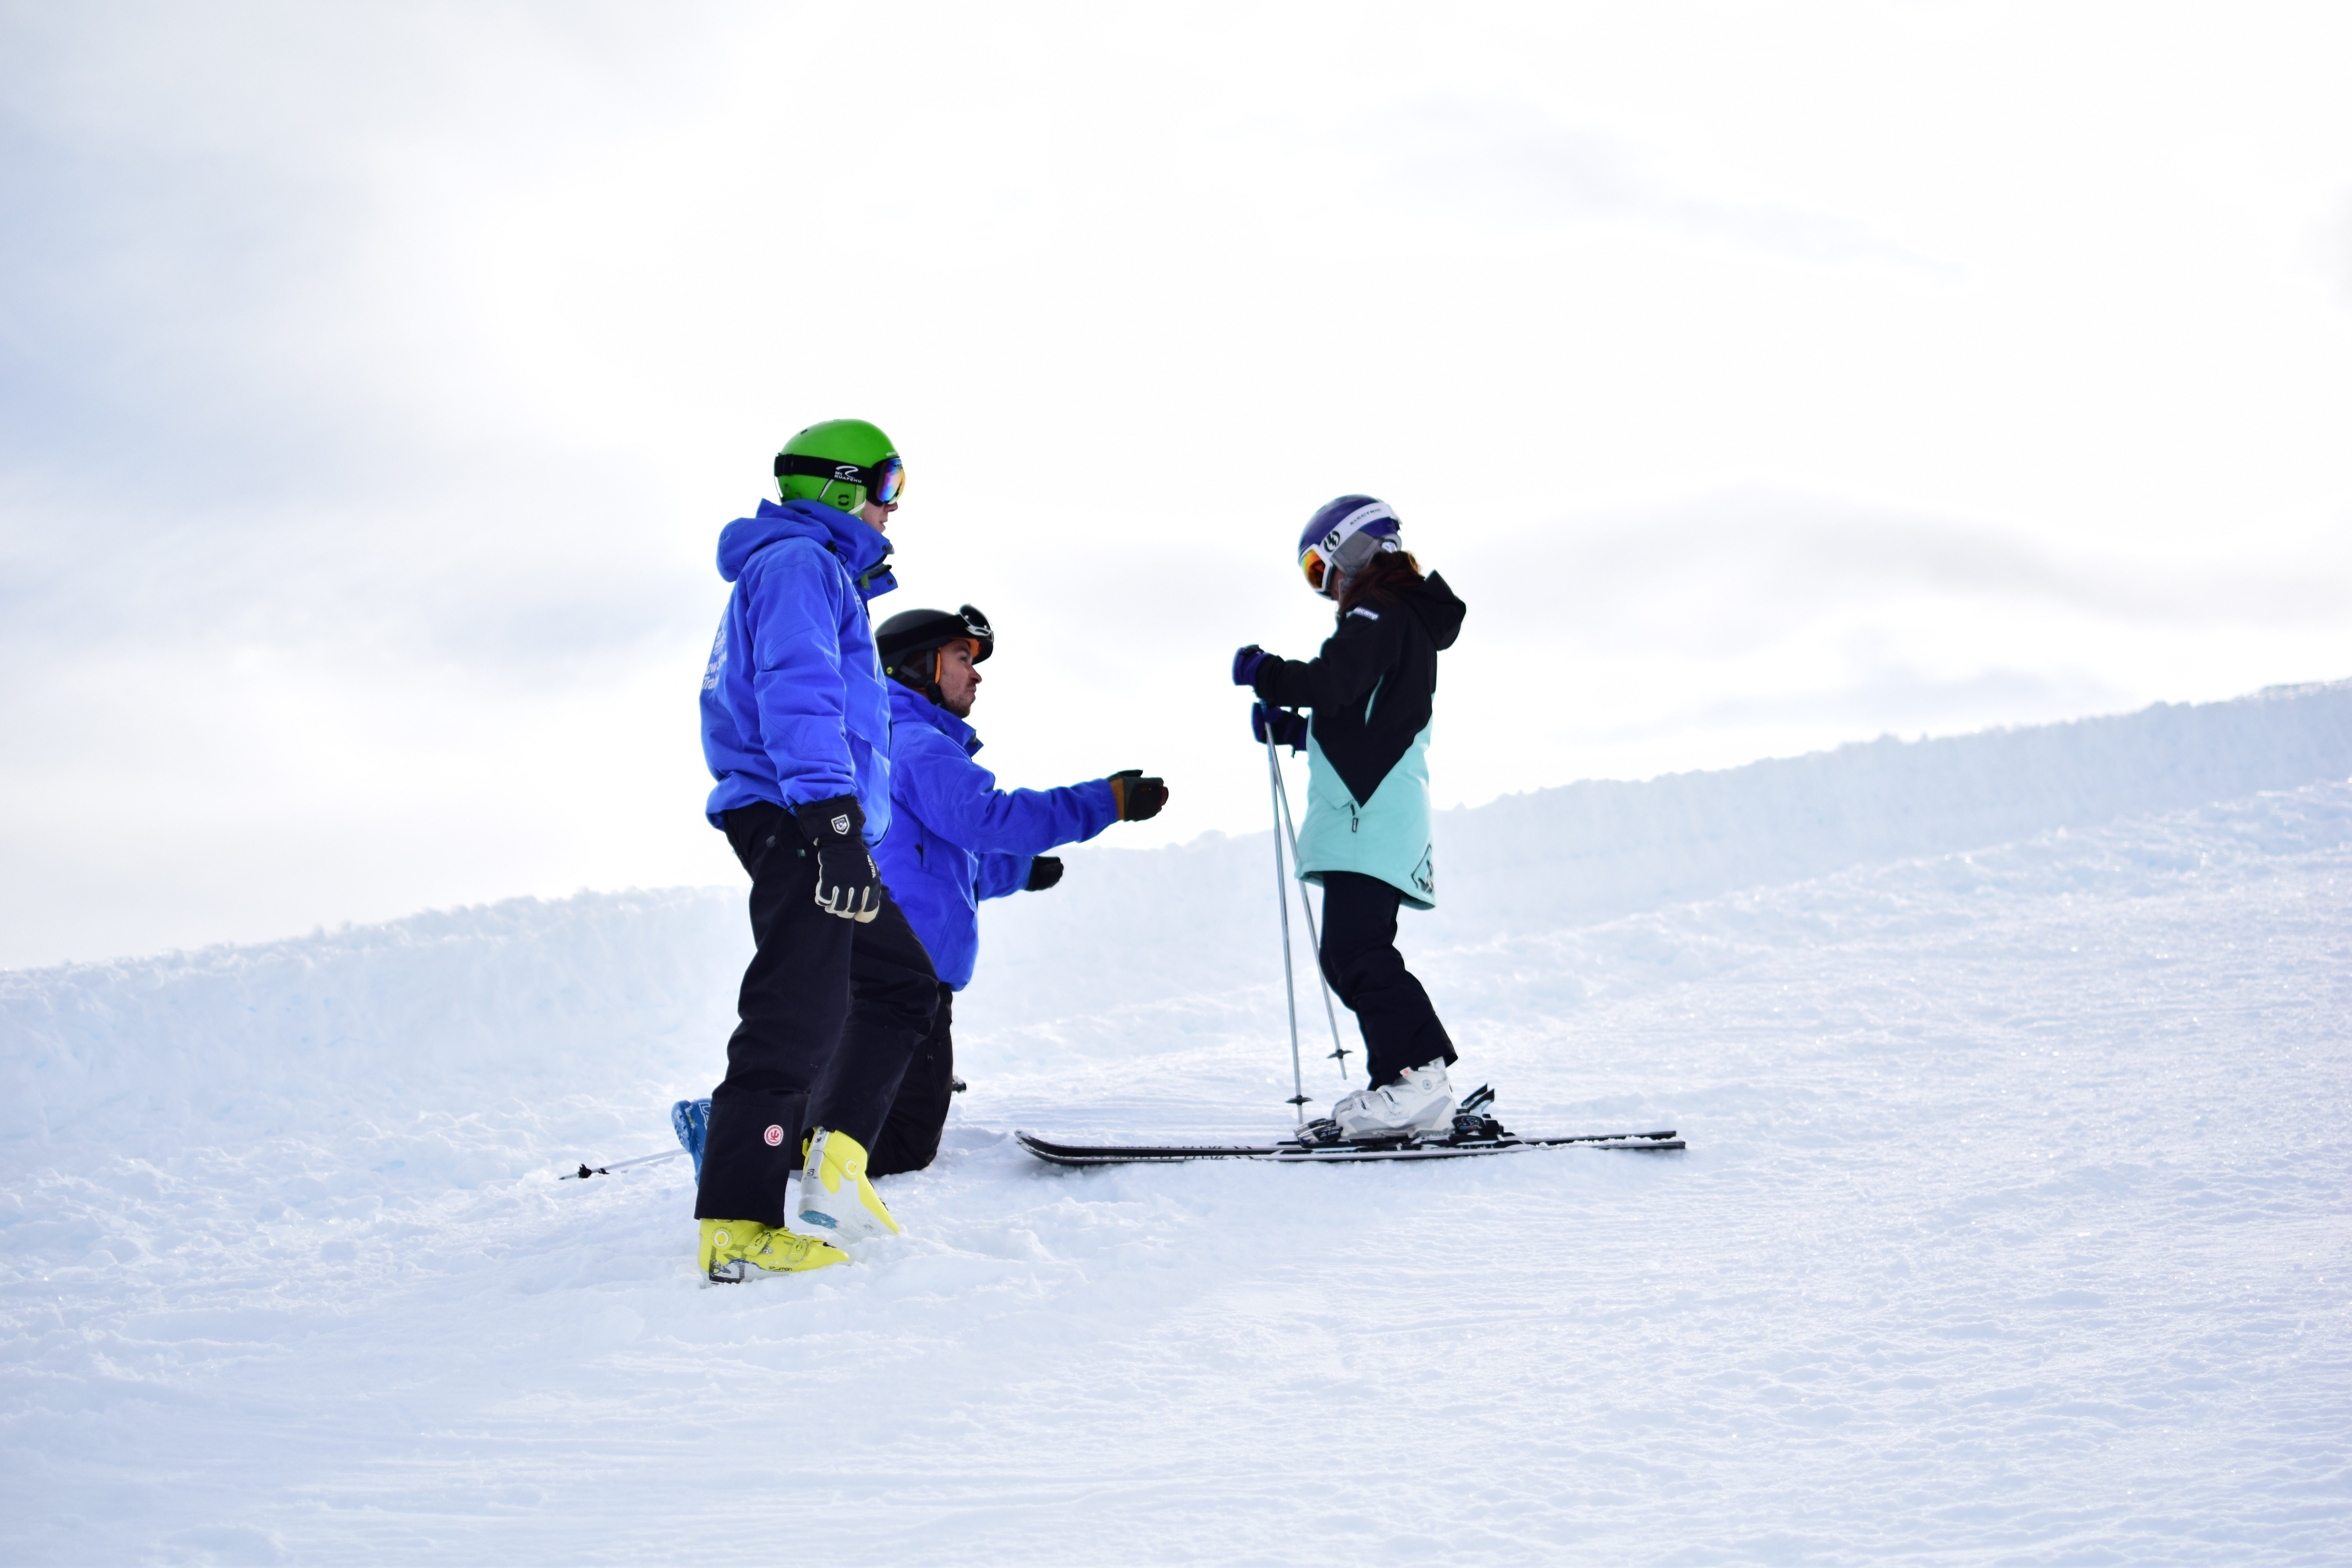 summer shred shenanigans catch up the program its not just about the skiing though and like and good mountain town there are no shortage of good nights out in ohakune a bar right in our lodge and